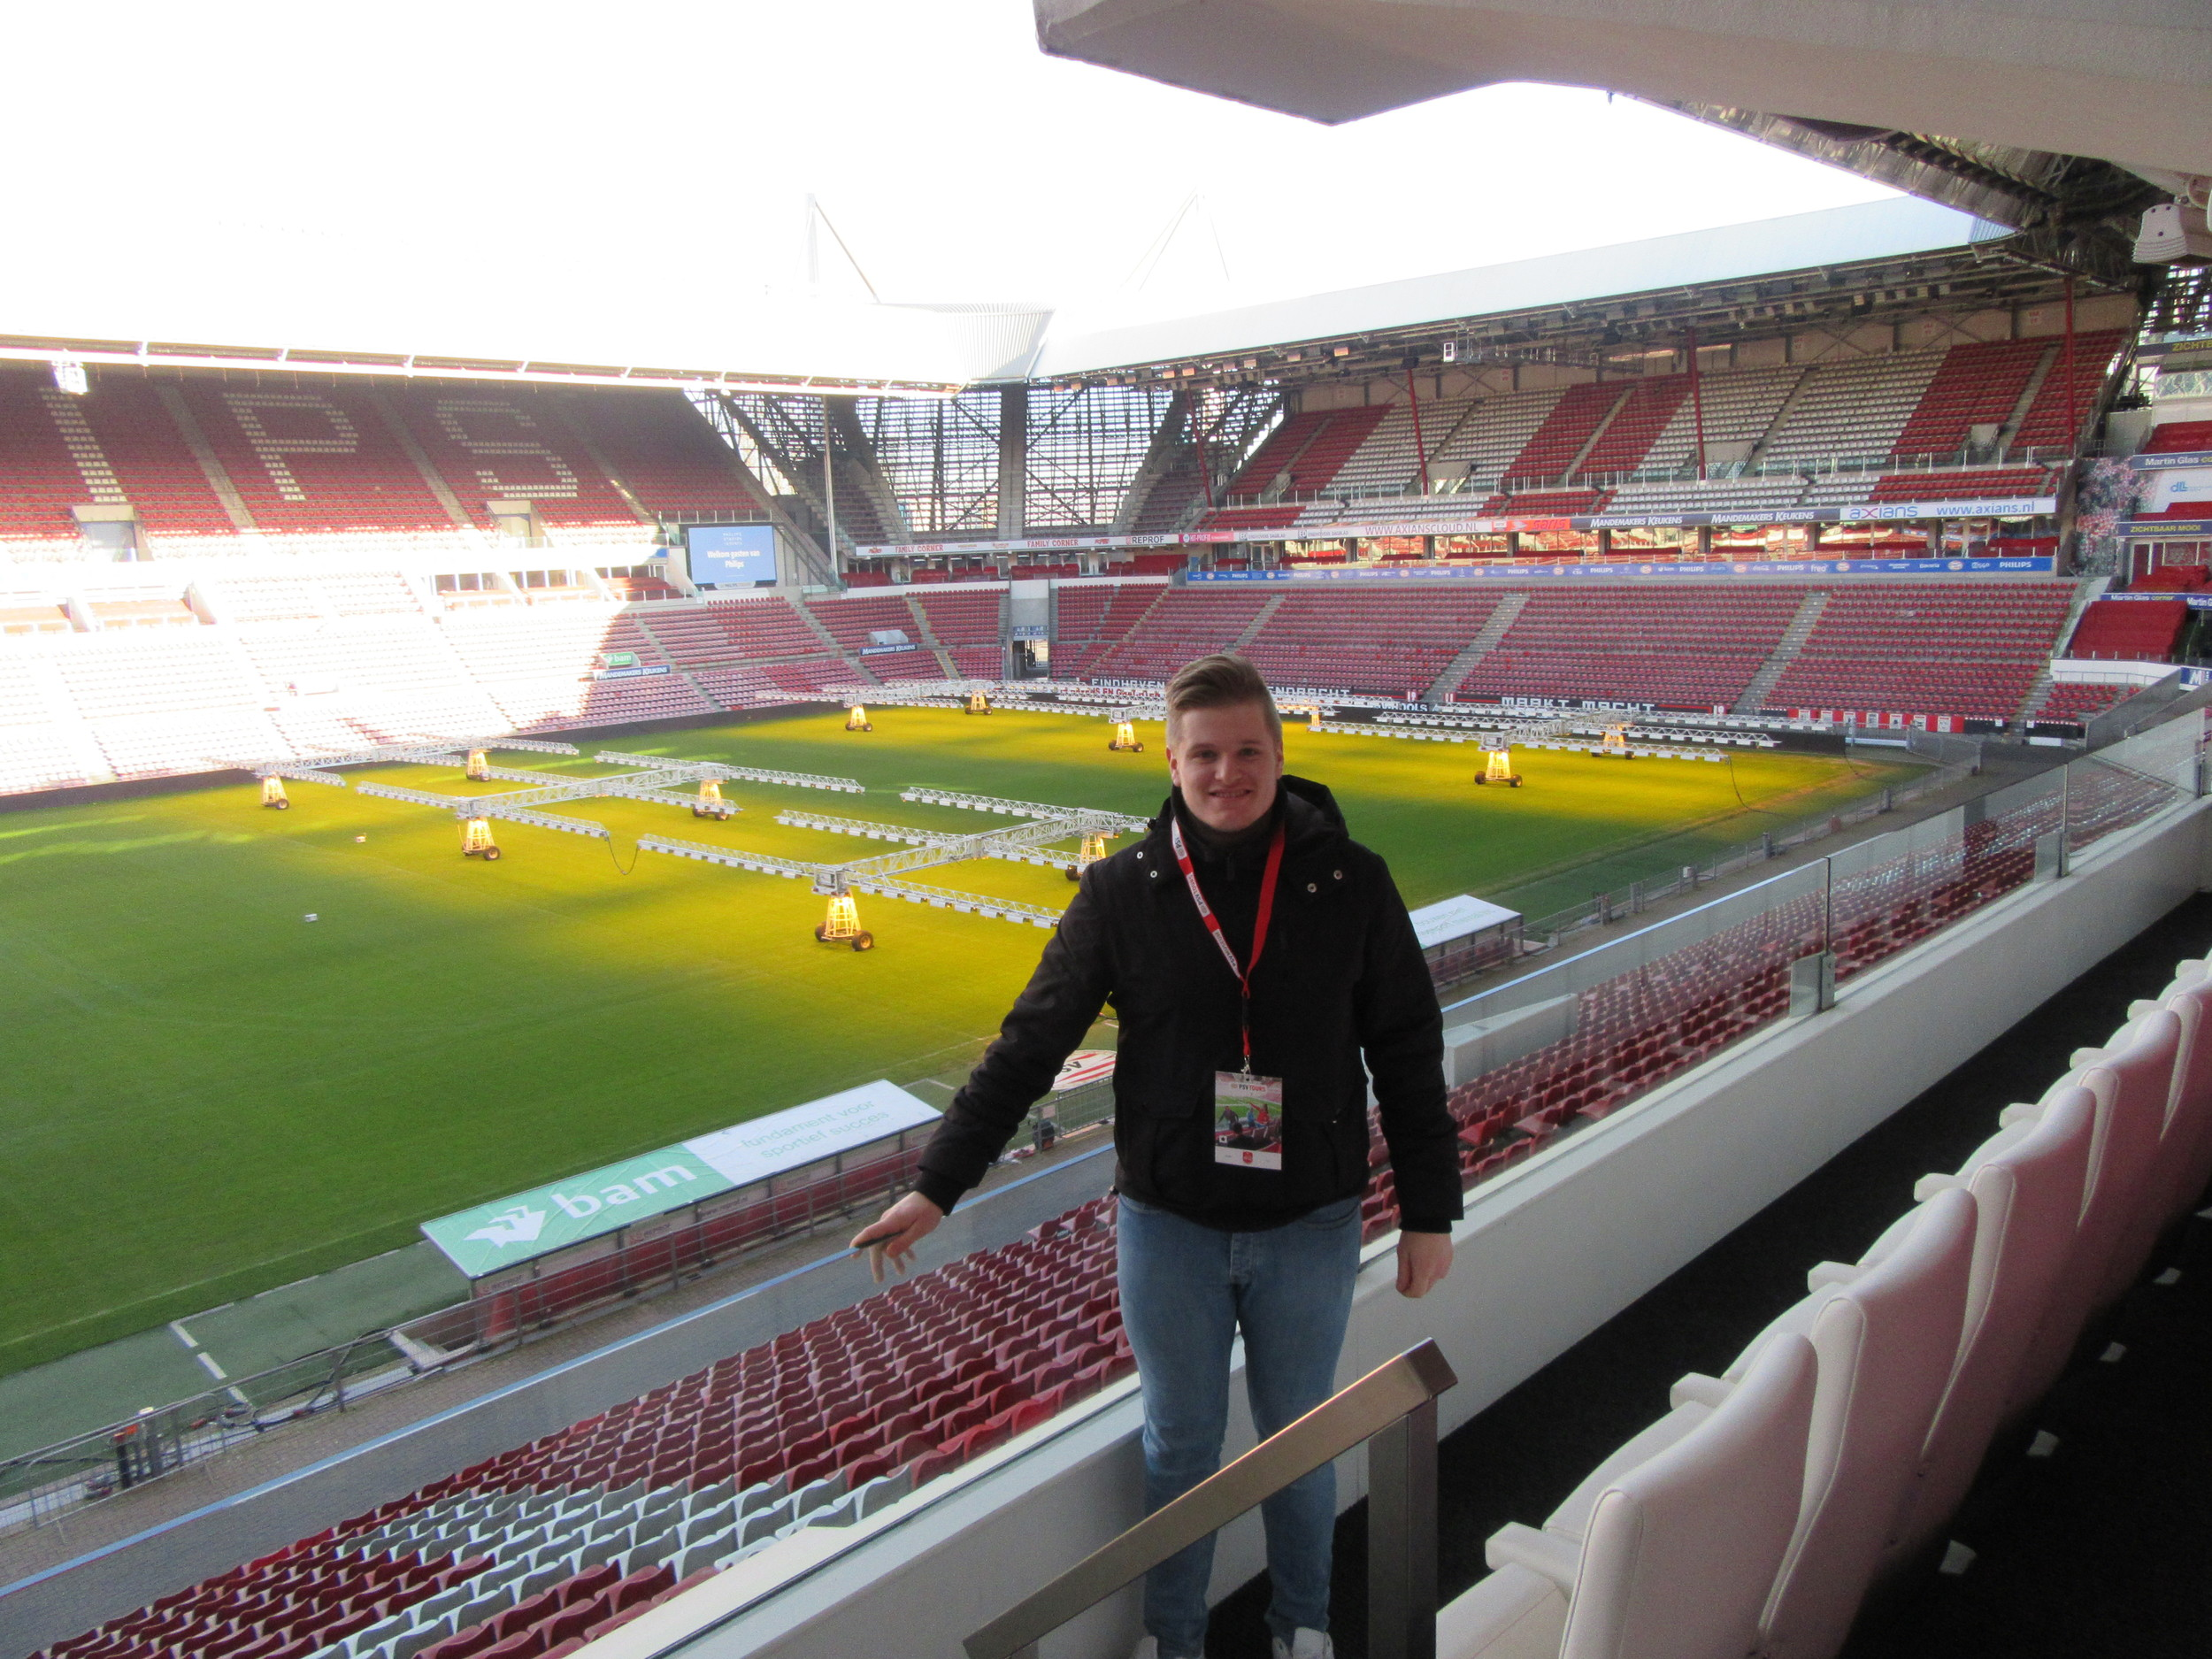 The view from the VIP boxes at Philips Stadion, which you get to see on the tour.